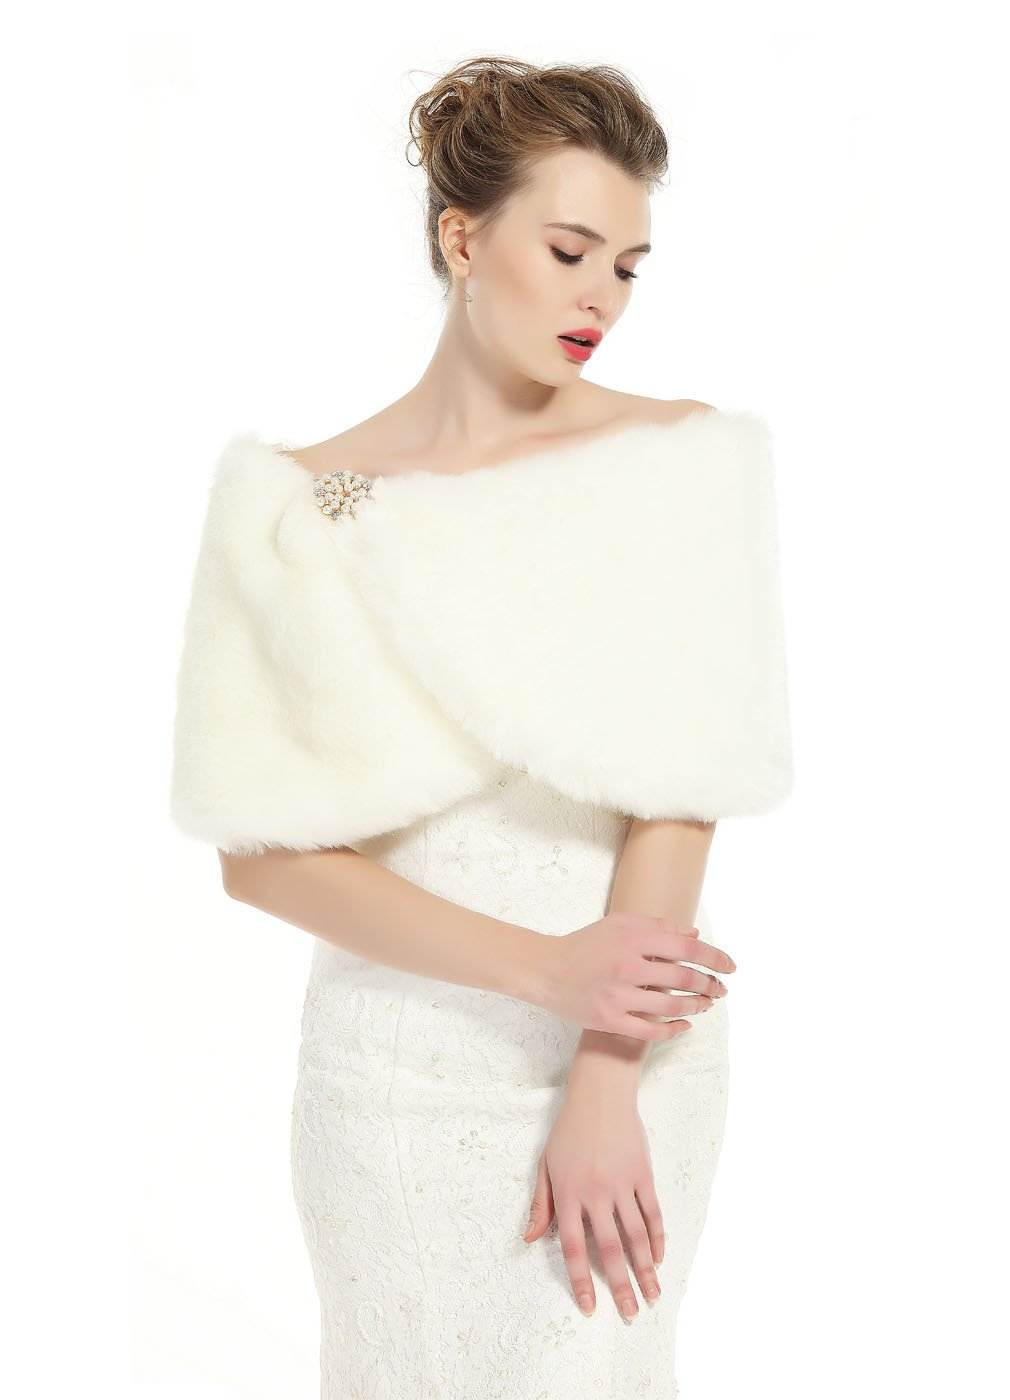 Faux Fur Wrap Shawl Women's Shrug Bridal Stole for Winter Wedding Party Free Brooch Ivory by BEAUTELICATE (Image #1)